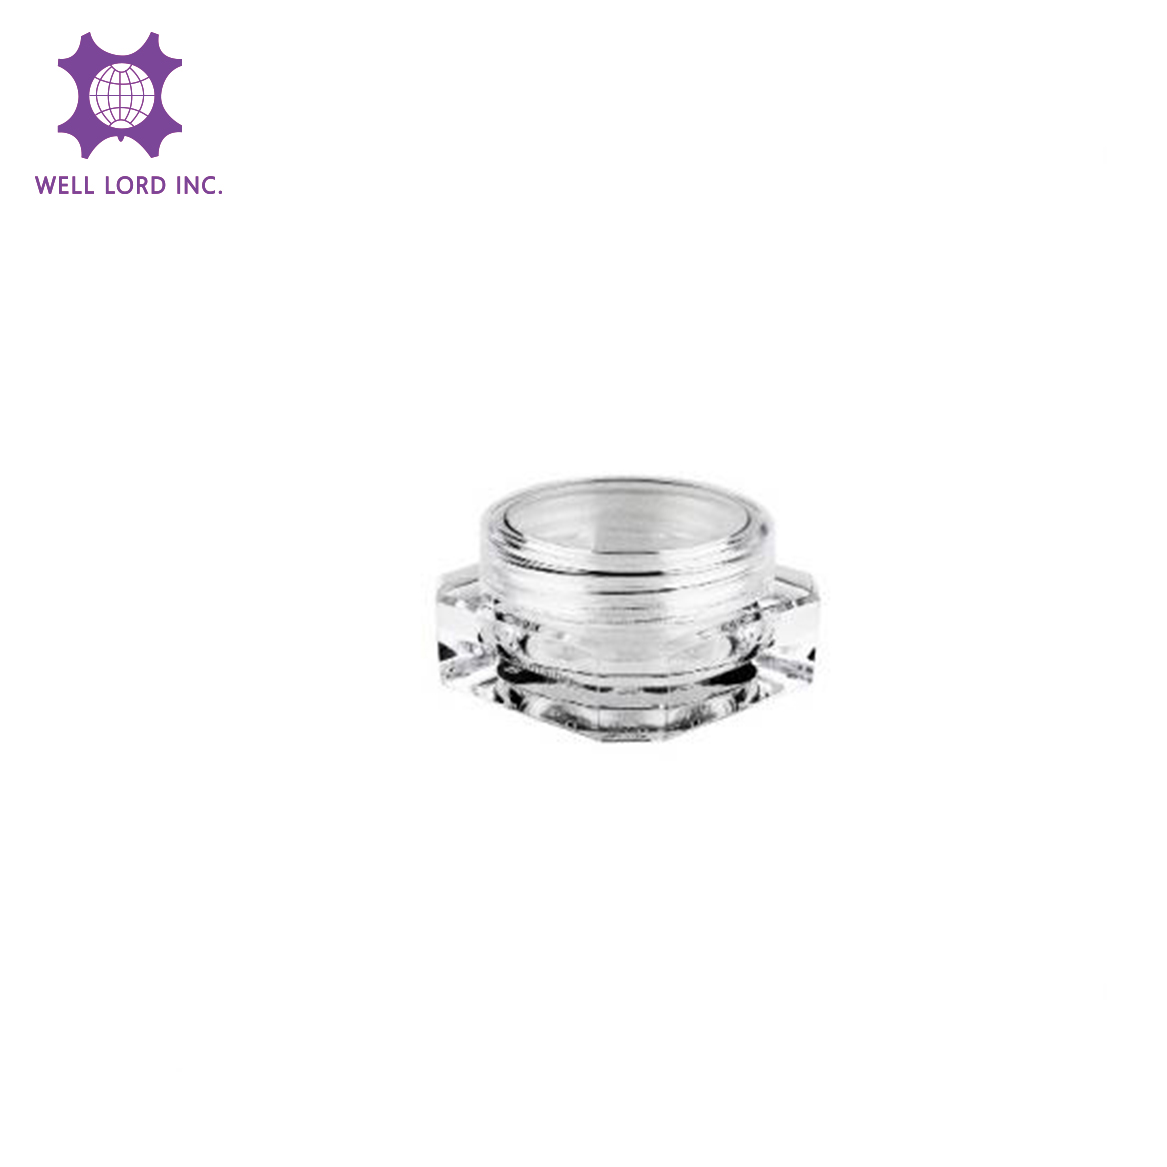 Transformer duo Multi-Dimensional plastic cosmetic packaging jar screw cap produce containers jar